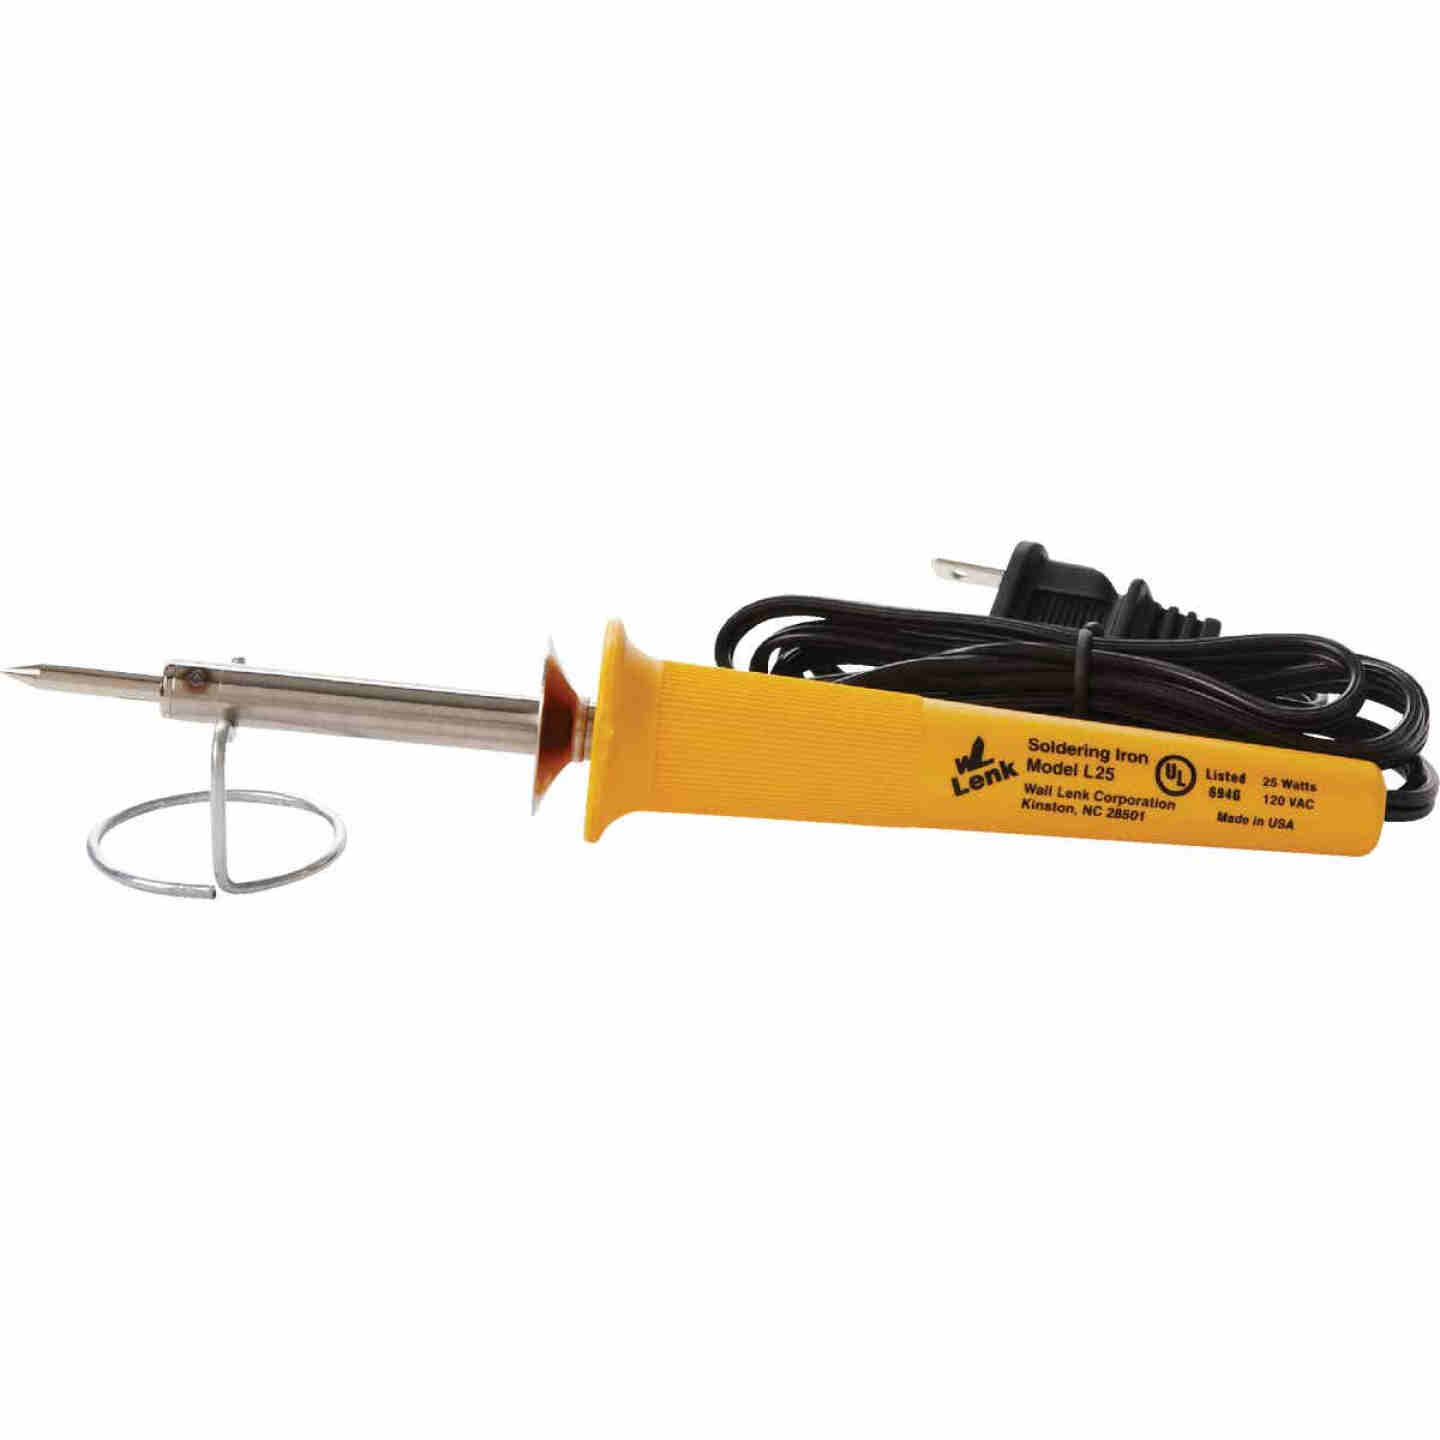 Wall Lenk 25W 900 F Electric Soldering Iron Image 1